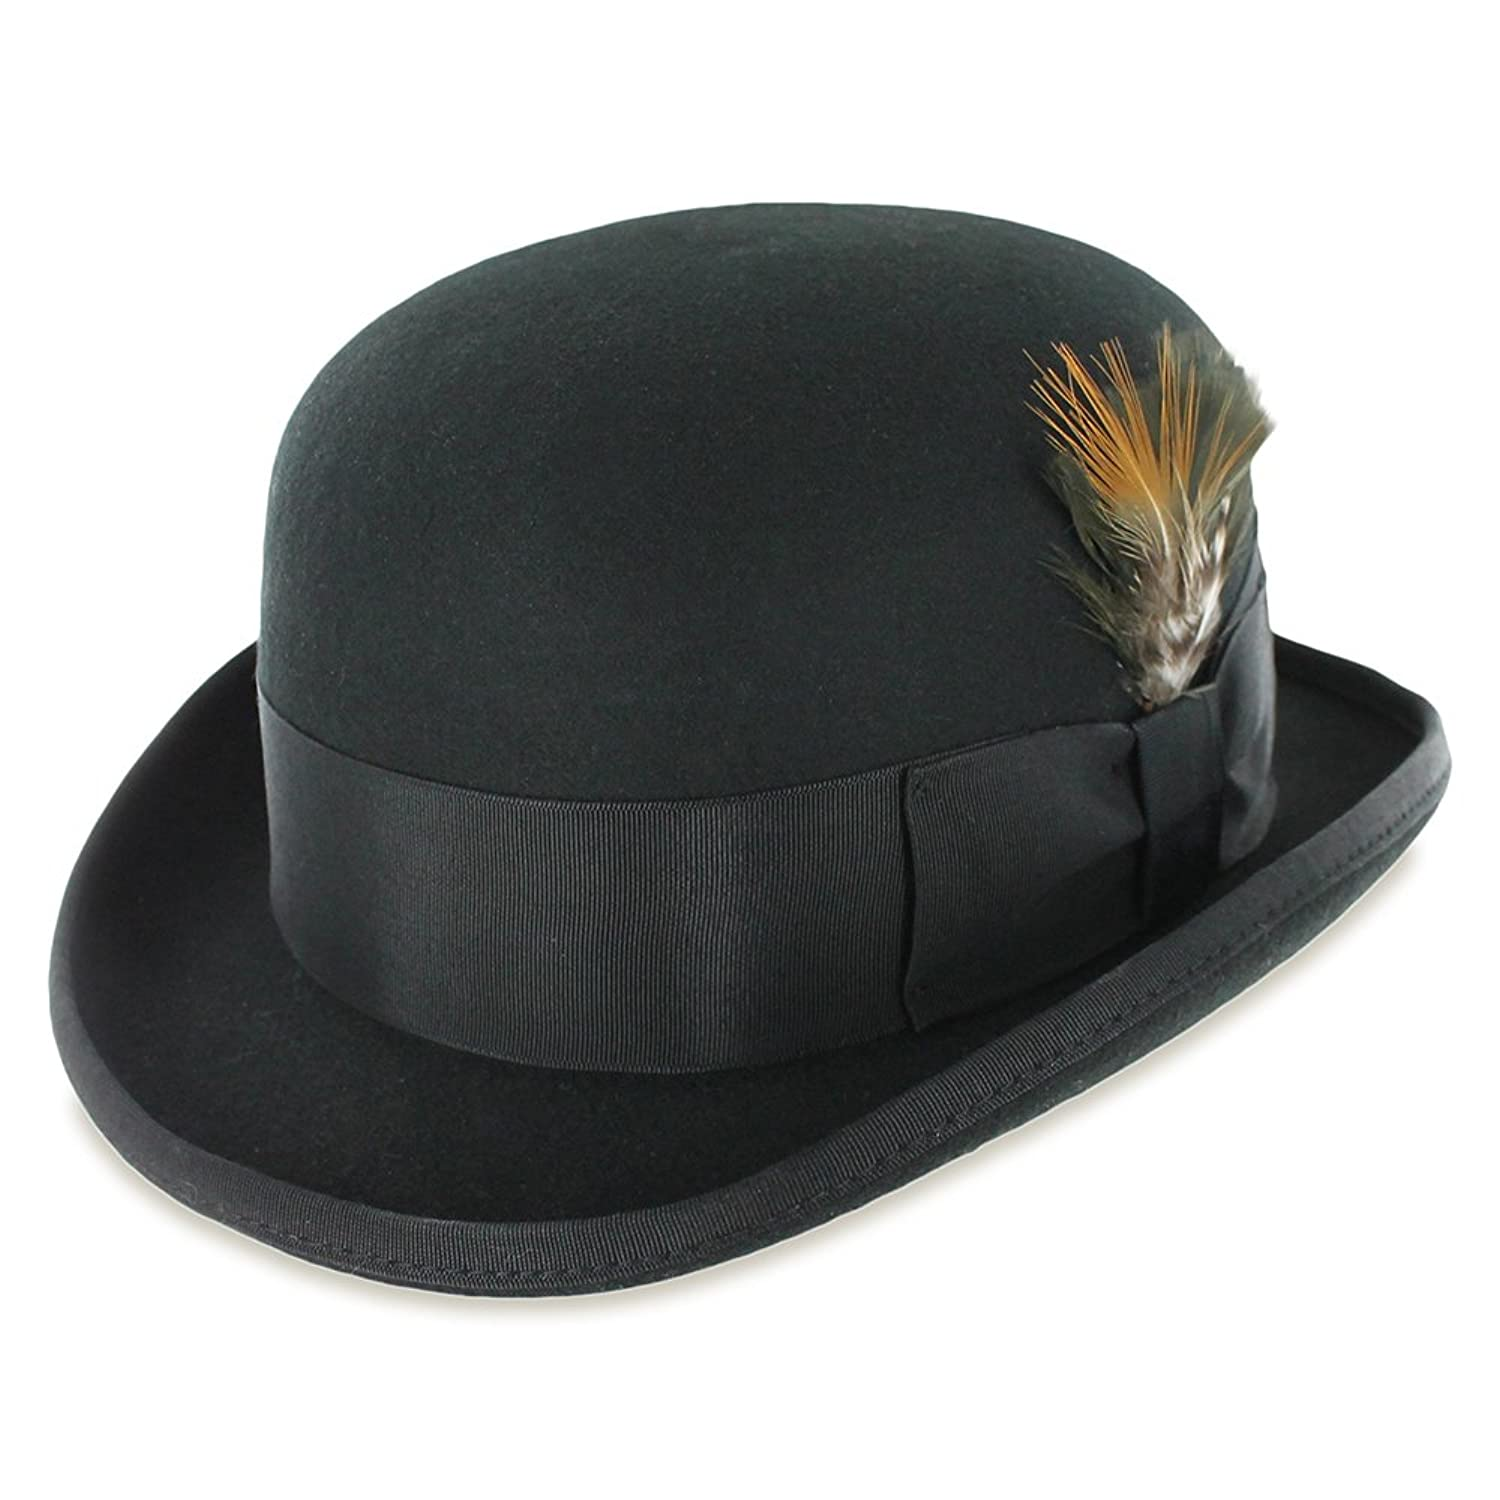 Wool Felt Derby Bowler Hat in Black or Gray